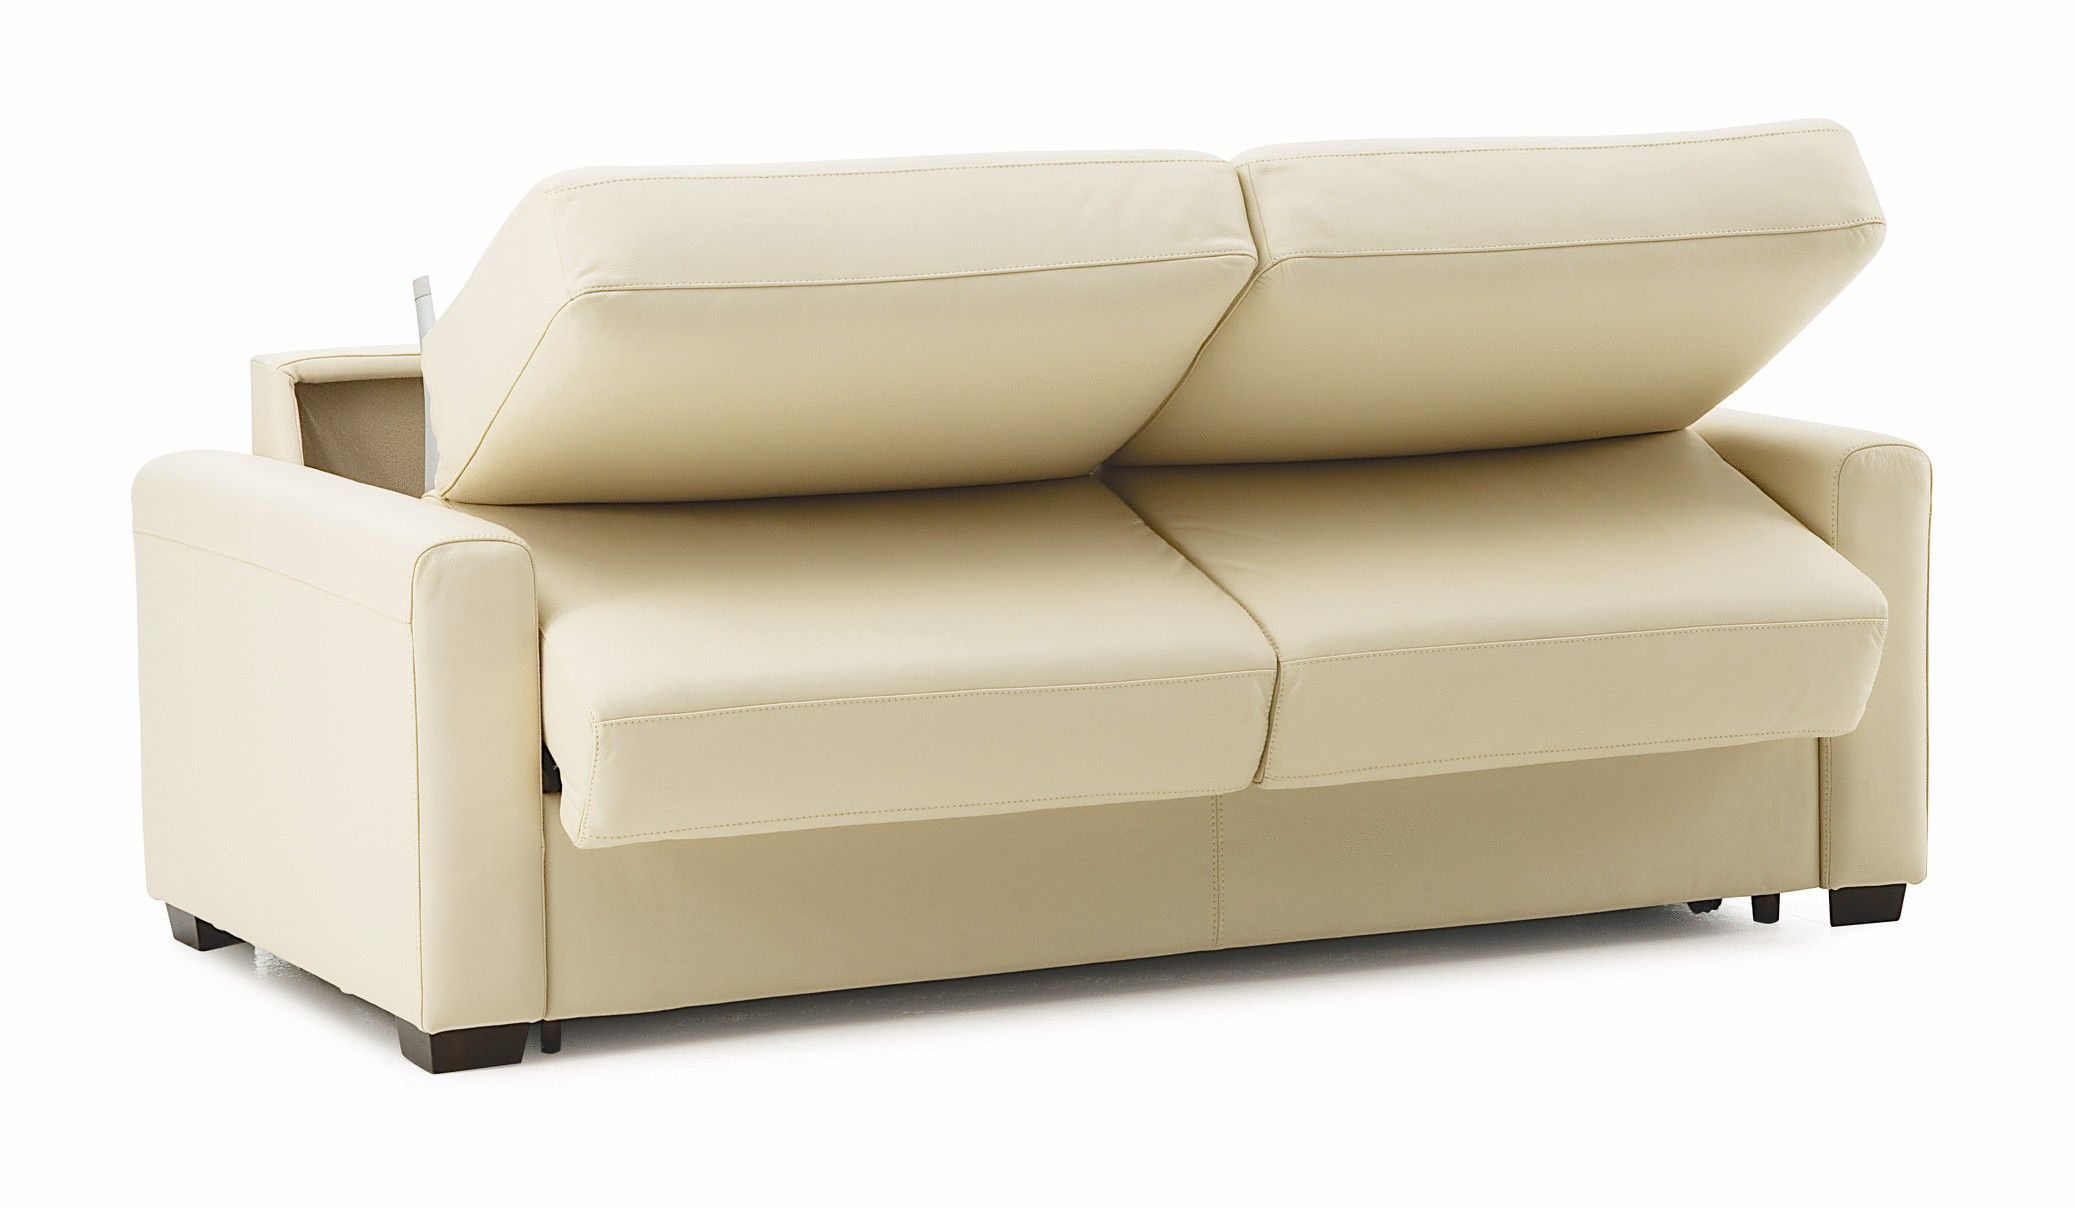 Awesome Small Size Sofa Perfect 58 With Additional Living Room Inspiration